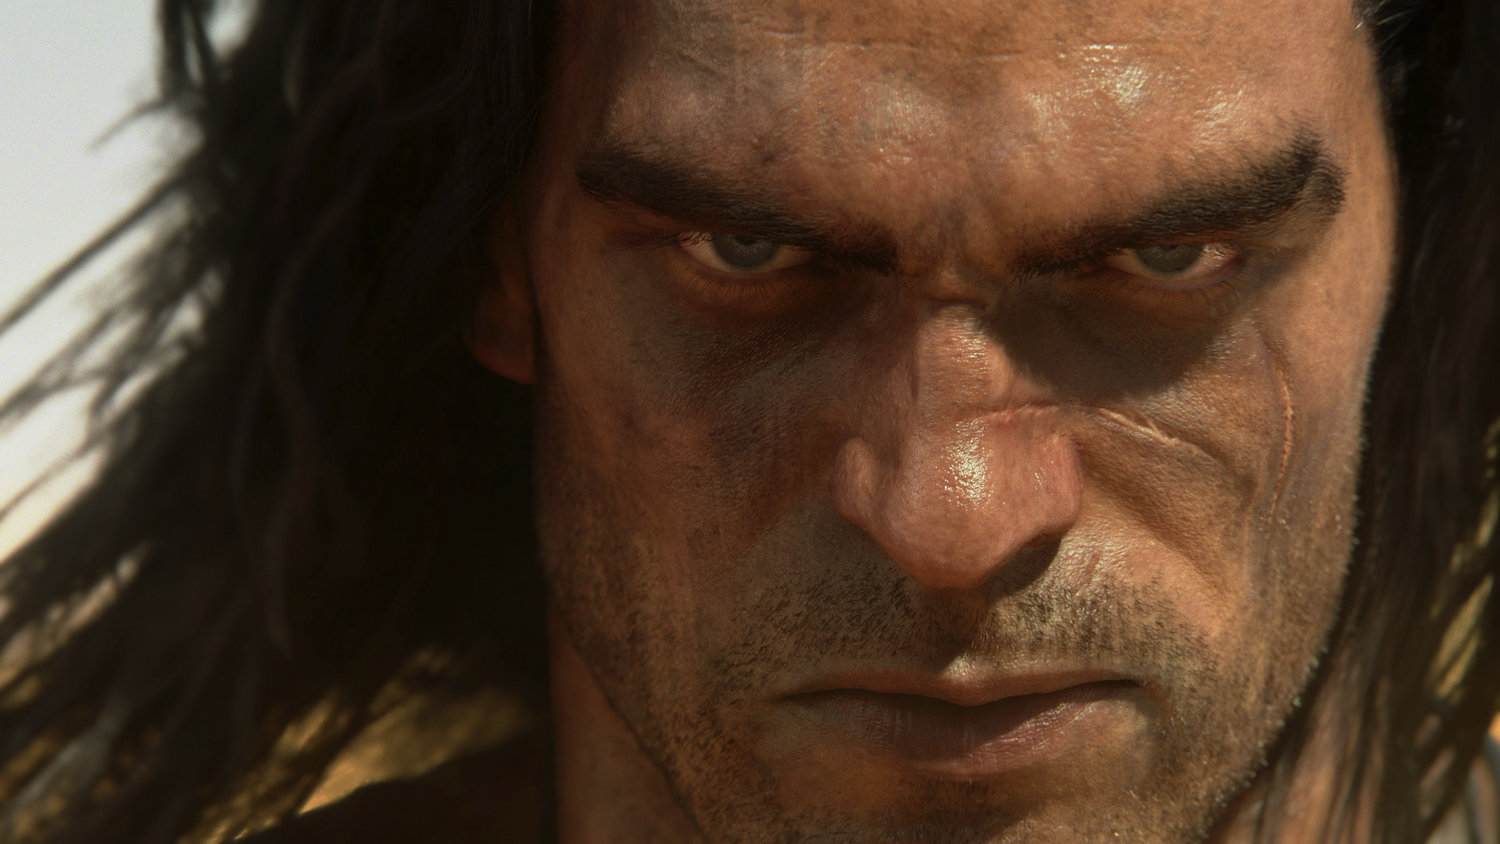 CONAN EXILES Removes Schlongs From Xbox Version Per Microsoft Request